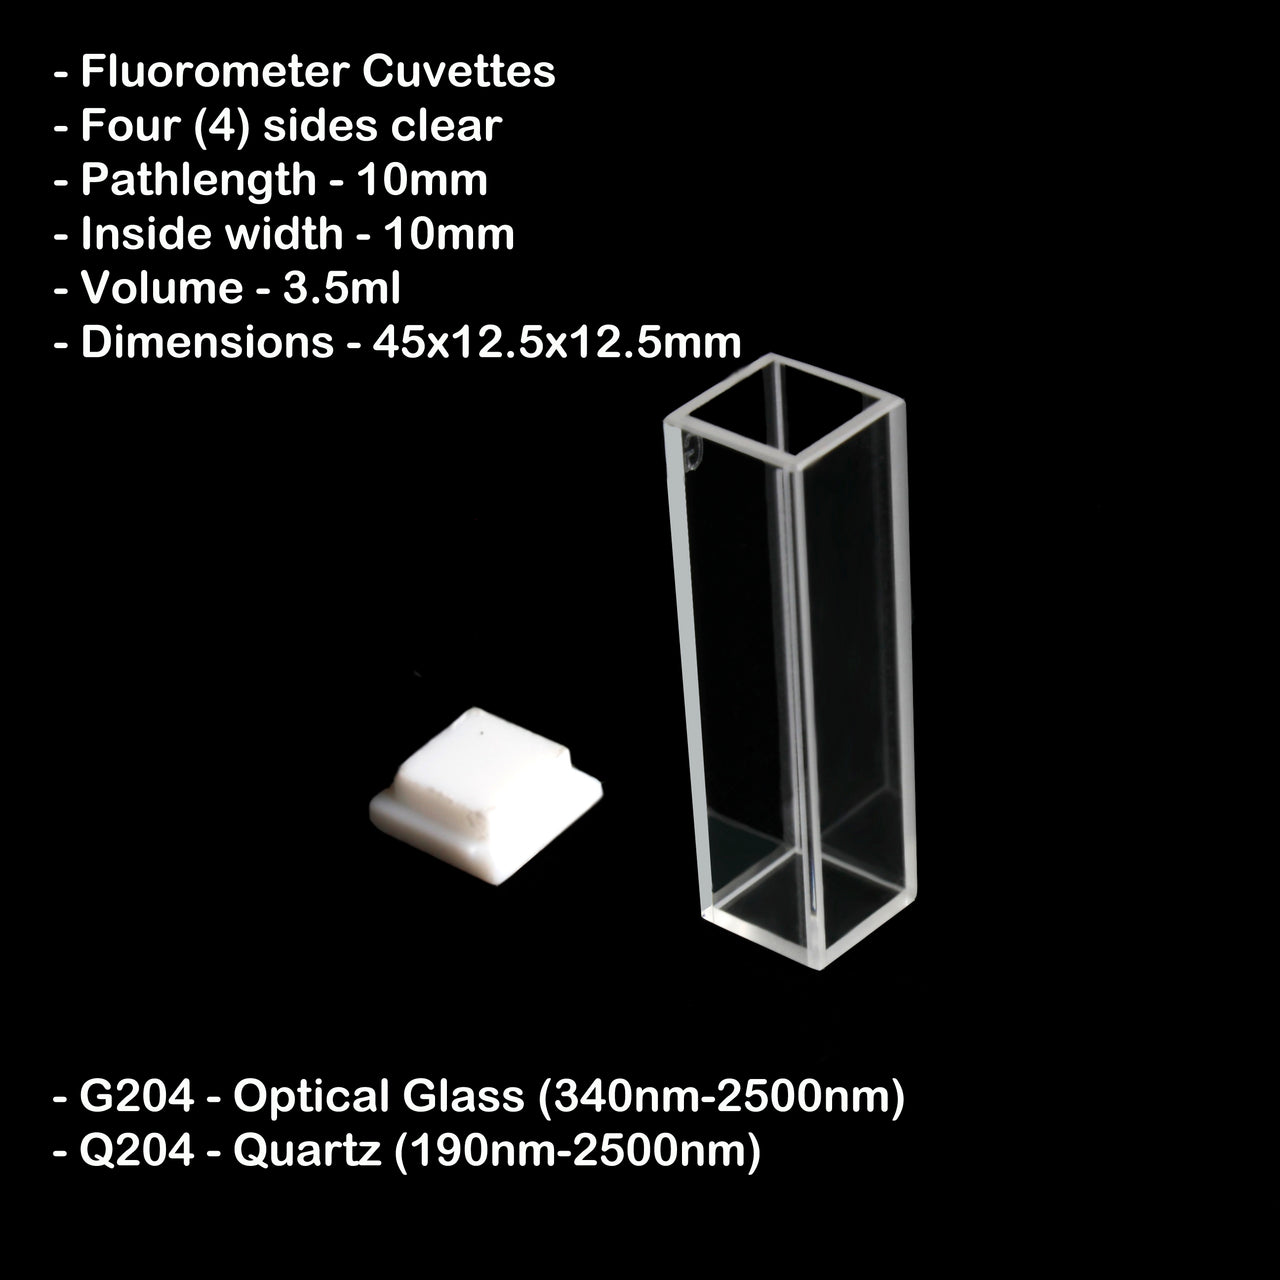 10mm Pathlength Standard Fluorometer Cuvette - 3.5ml Quartz